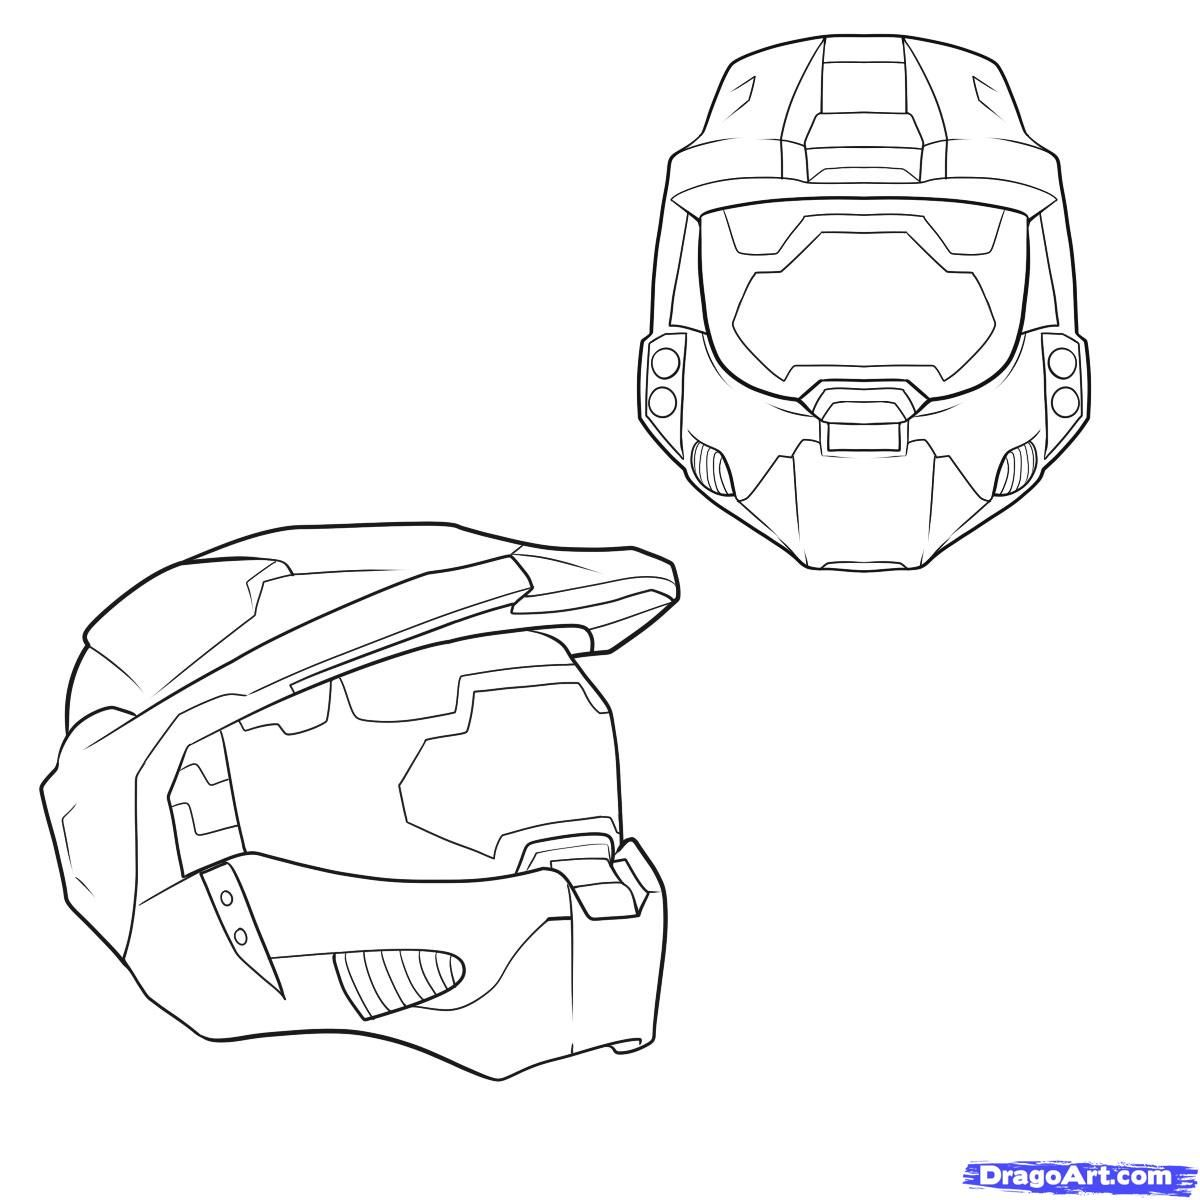 spartan helmet coloring pages clipart illustration of a black and white spartan or coloring spartan helmet pages